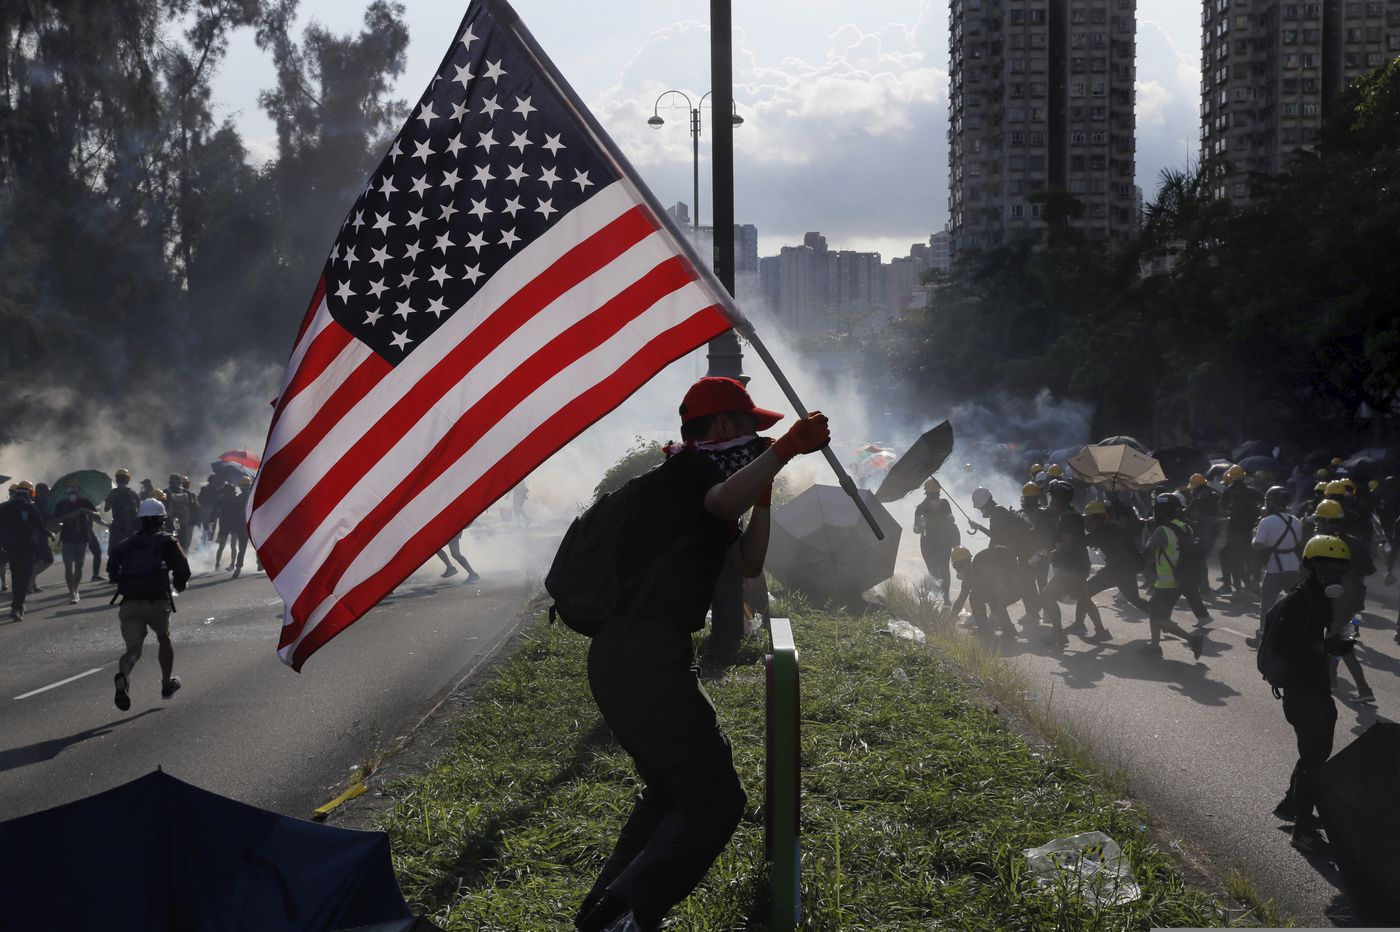 American flags in Hong Kong show people still fight for our values. Americans should join them | Will Bunch